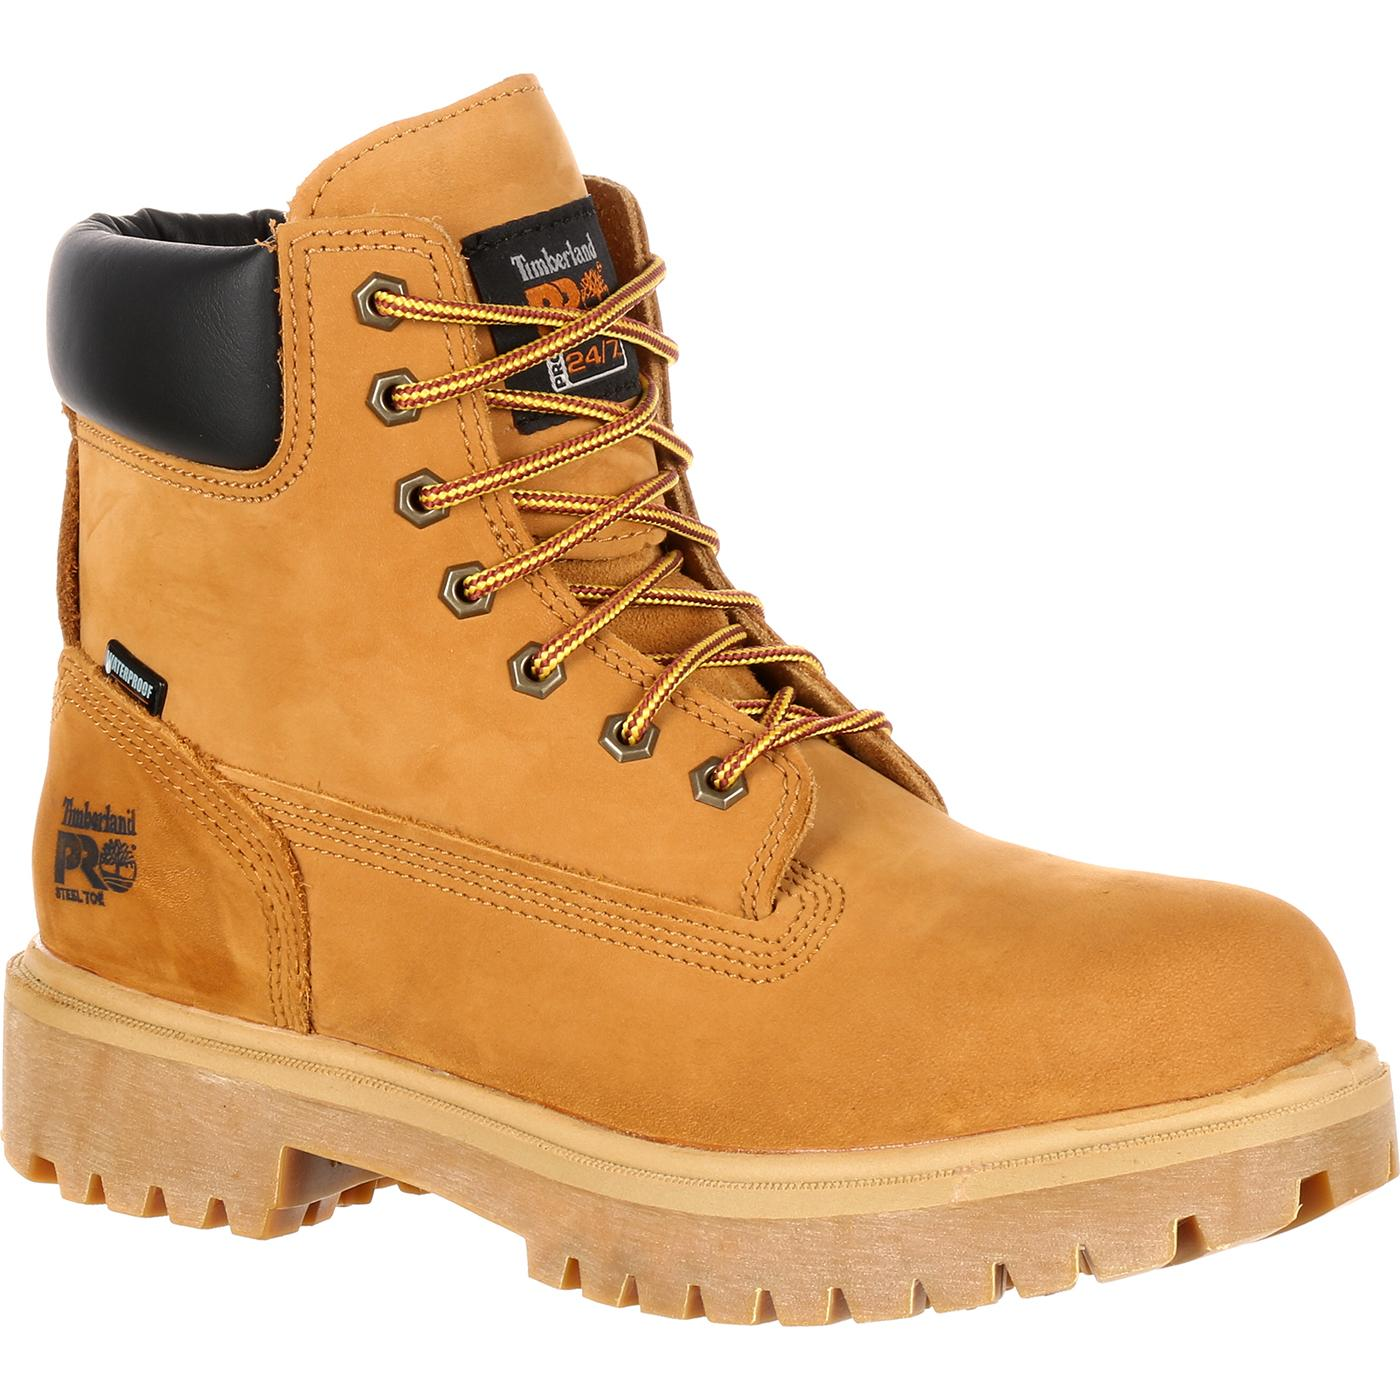 Timberland Pro Direct Attach Steel Toe Waterproof 200g